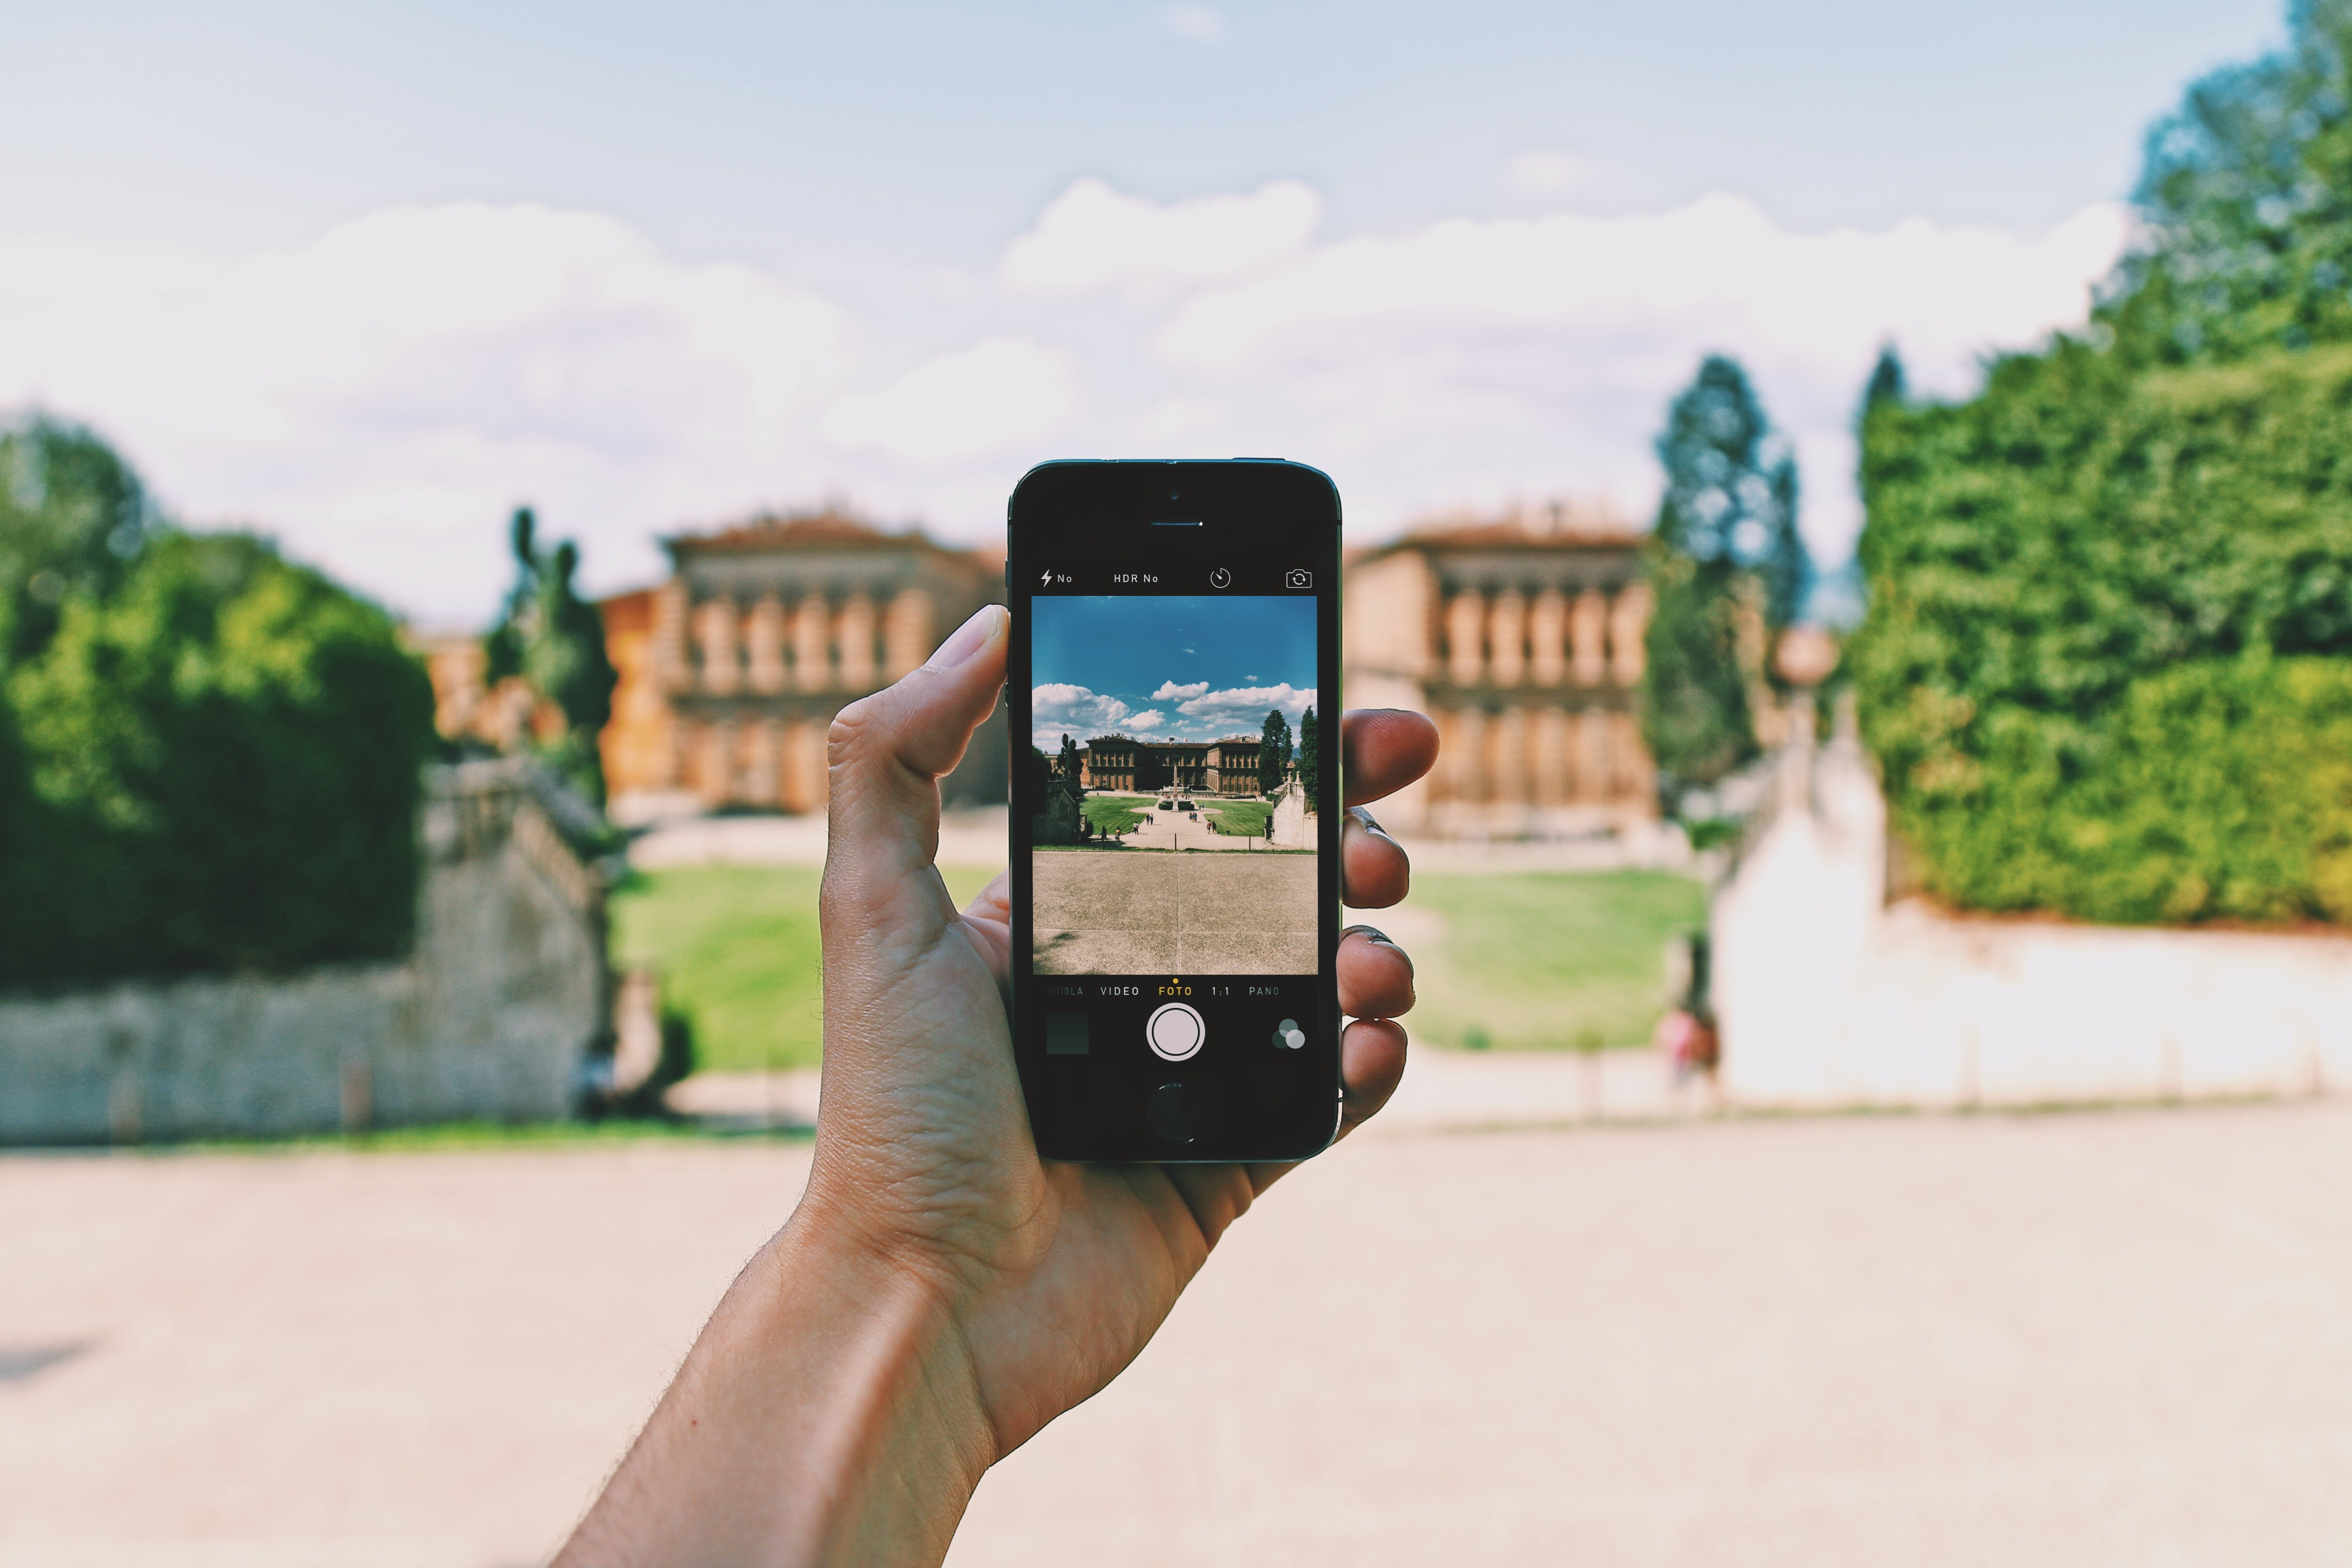 Person Using Space Gray Iphone 5s Taking a Picture of Landmark during Day